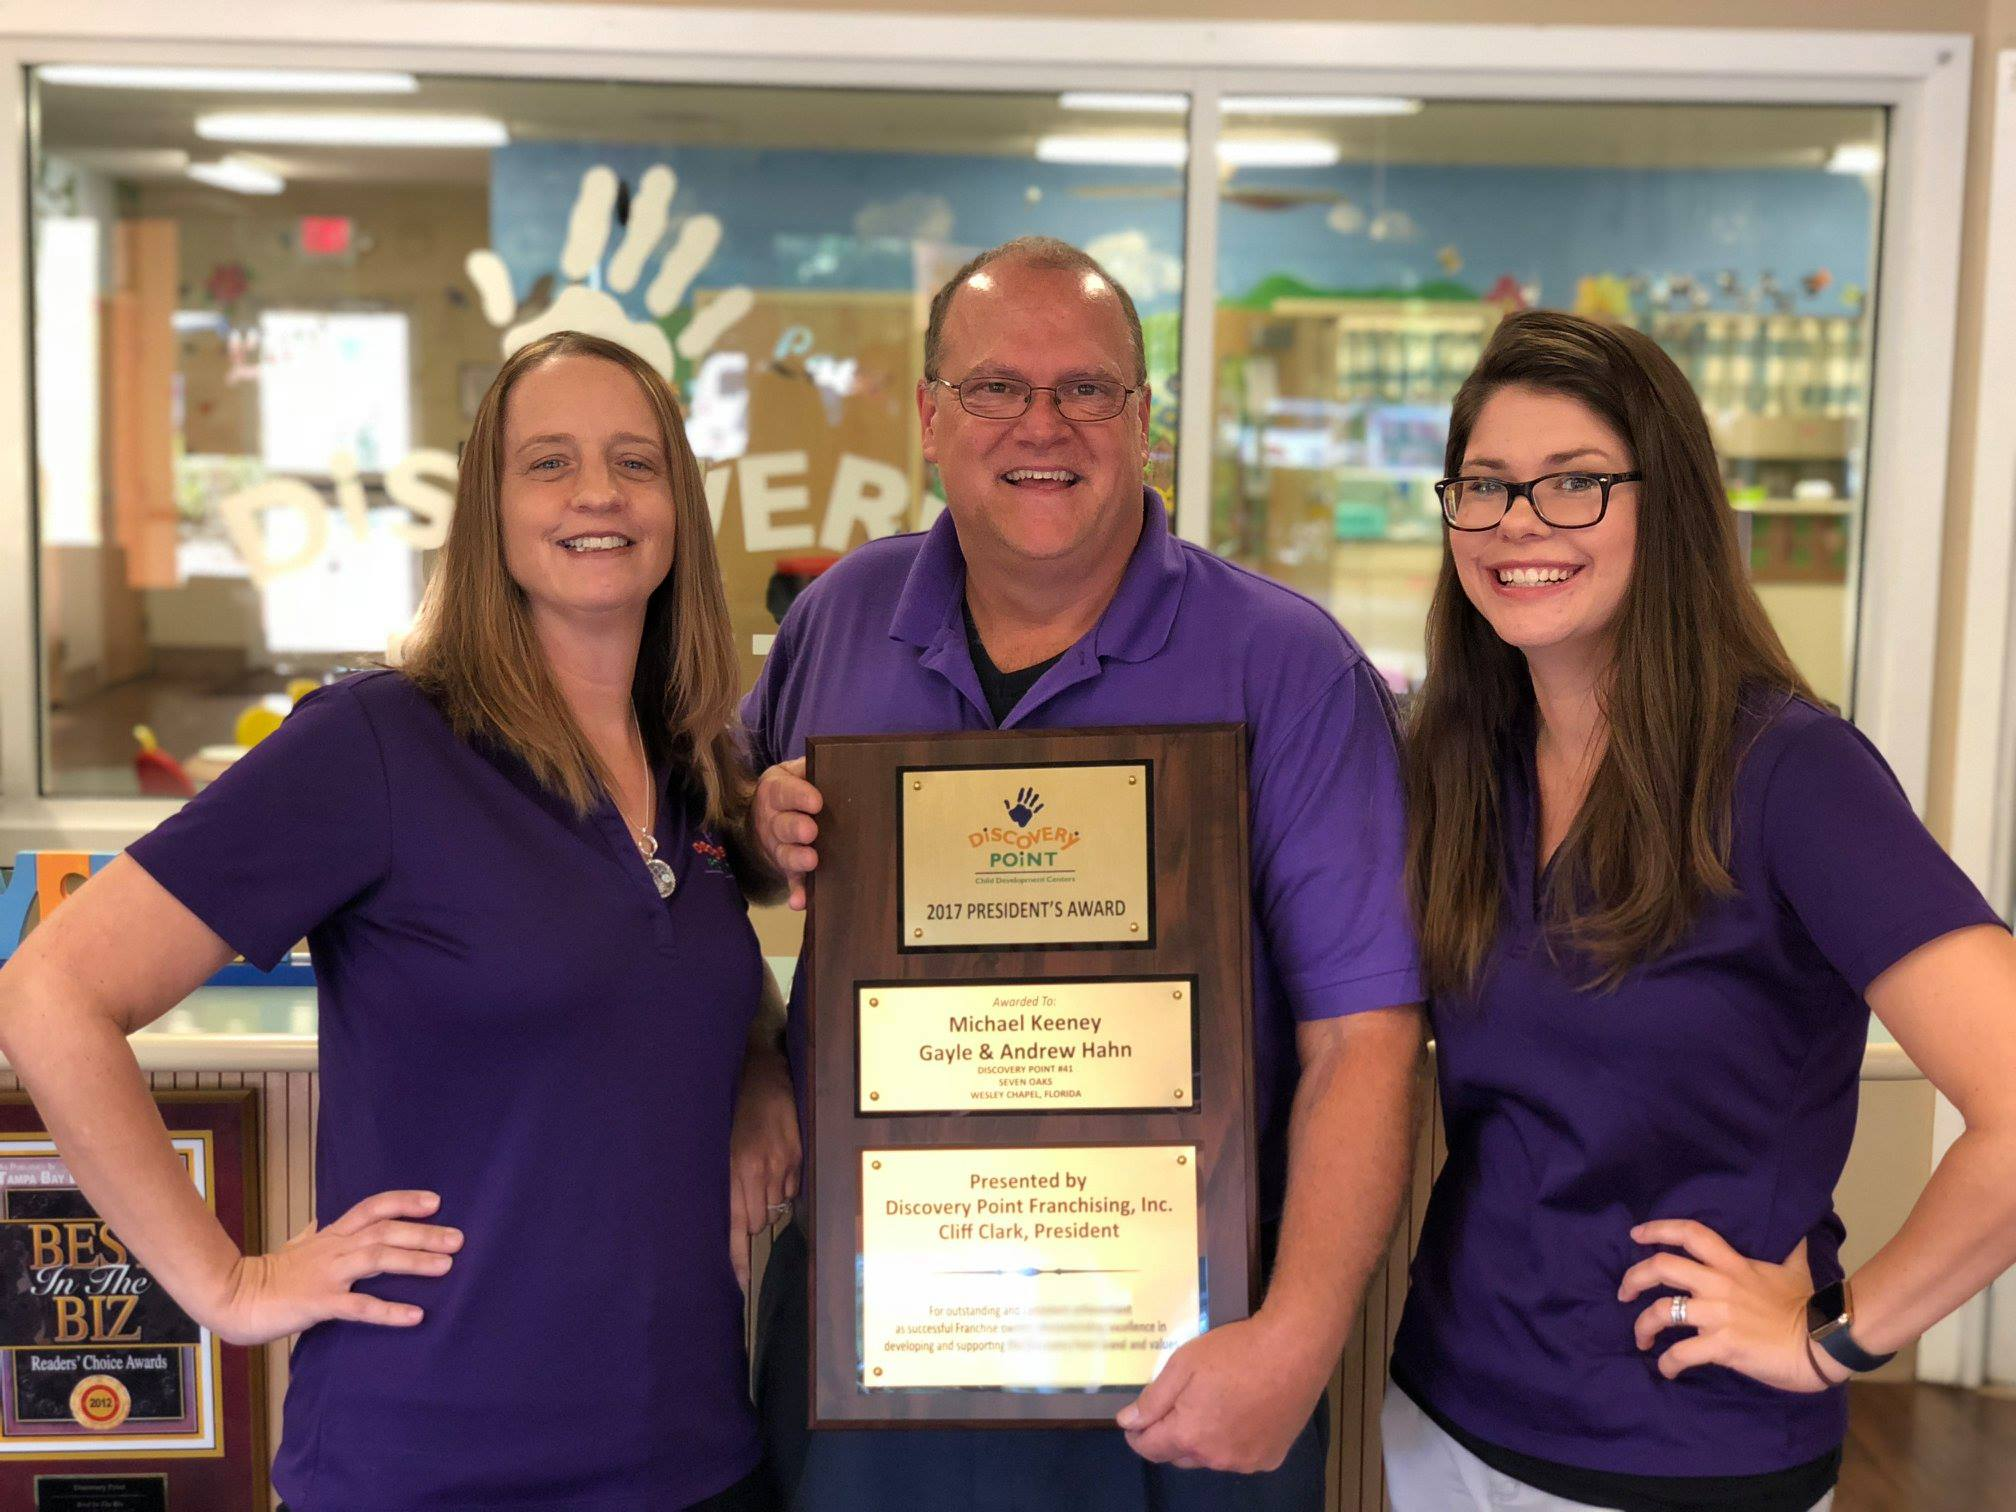 daycare franchise owner and staff with award